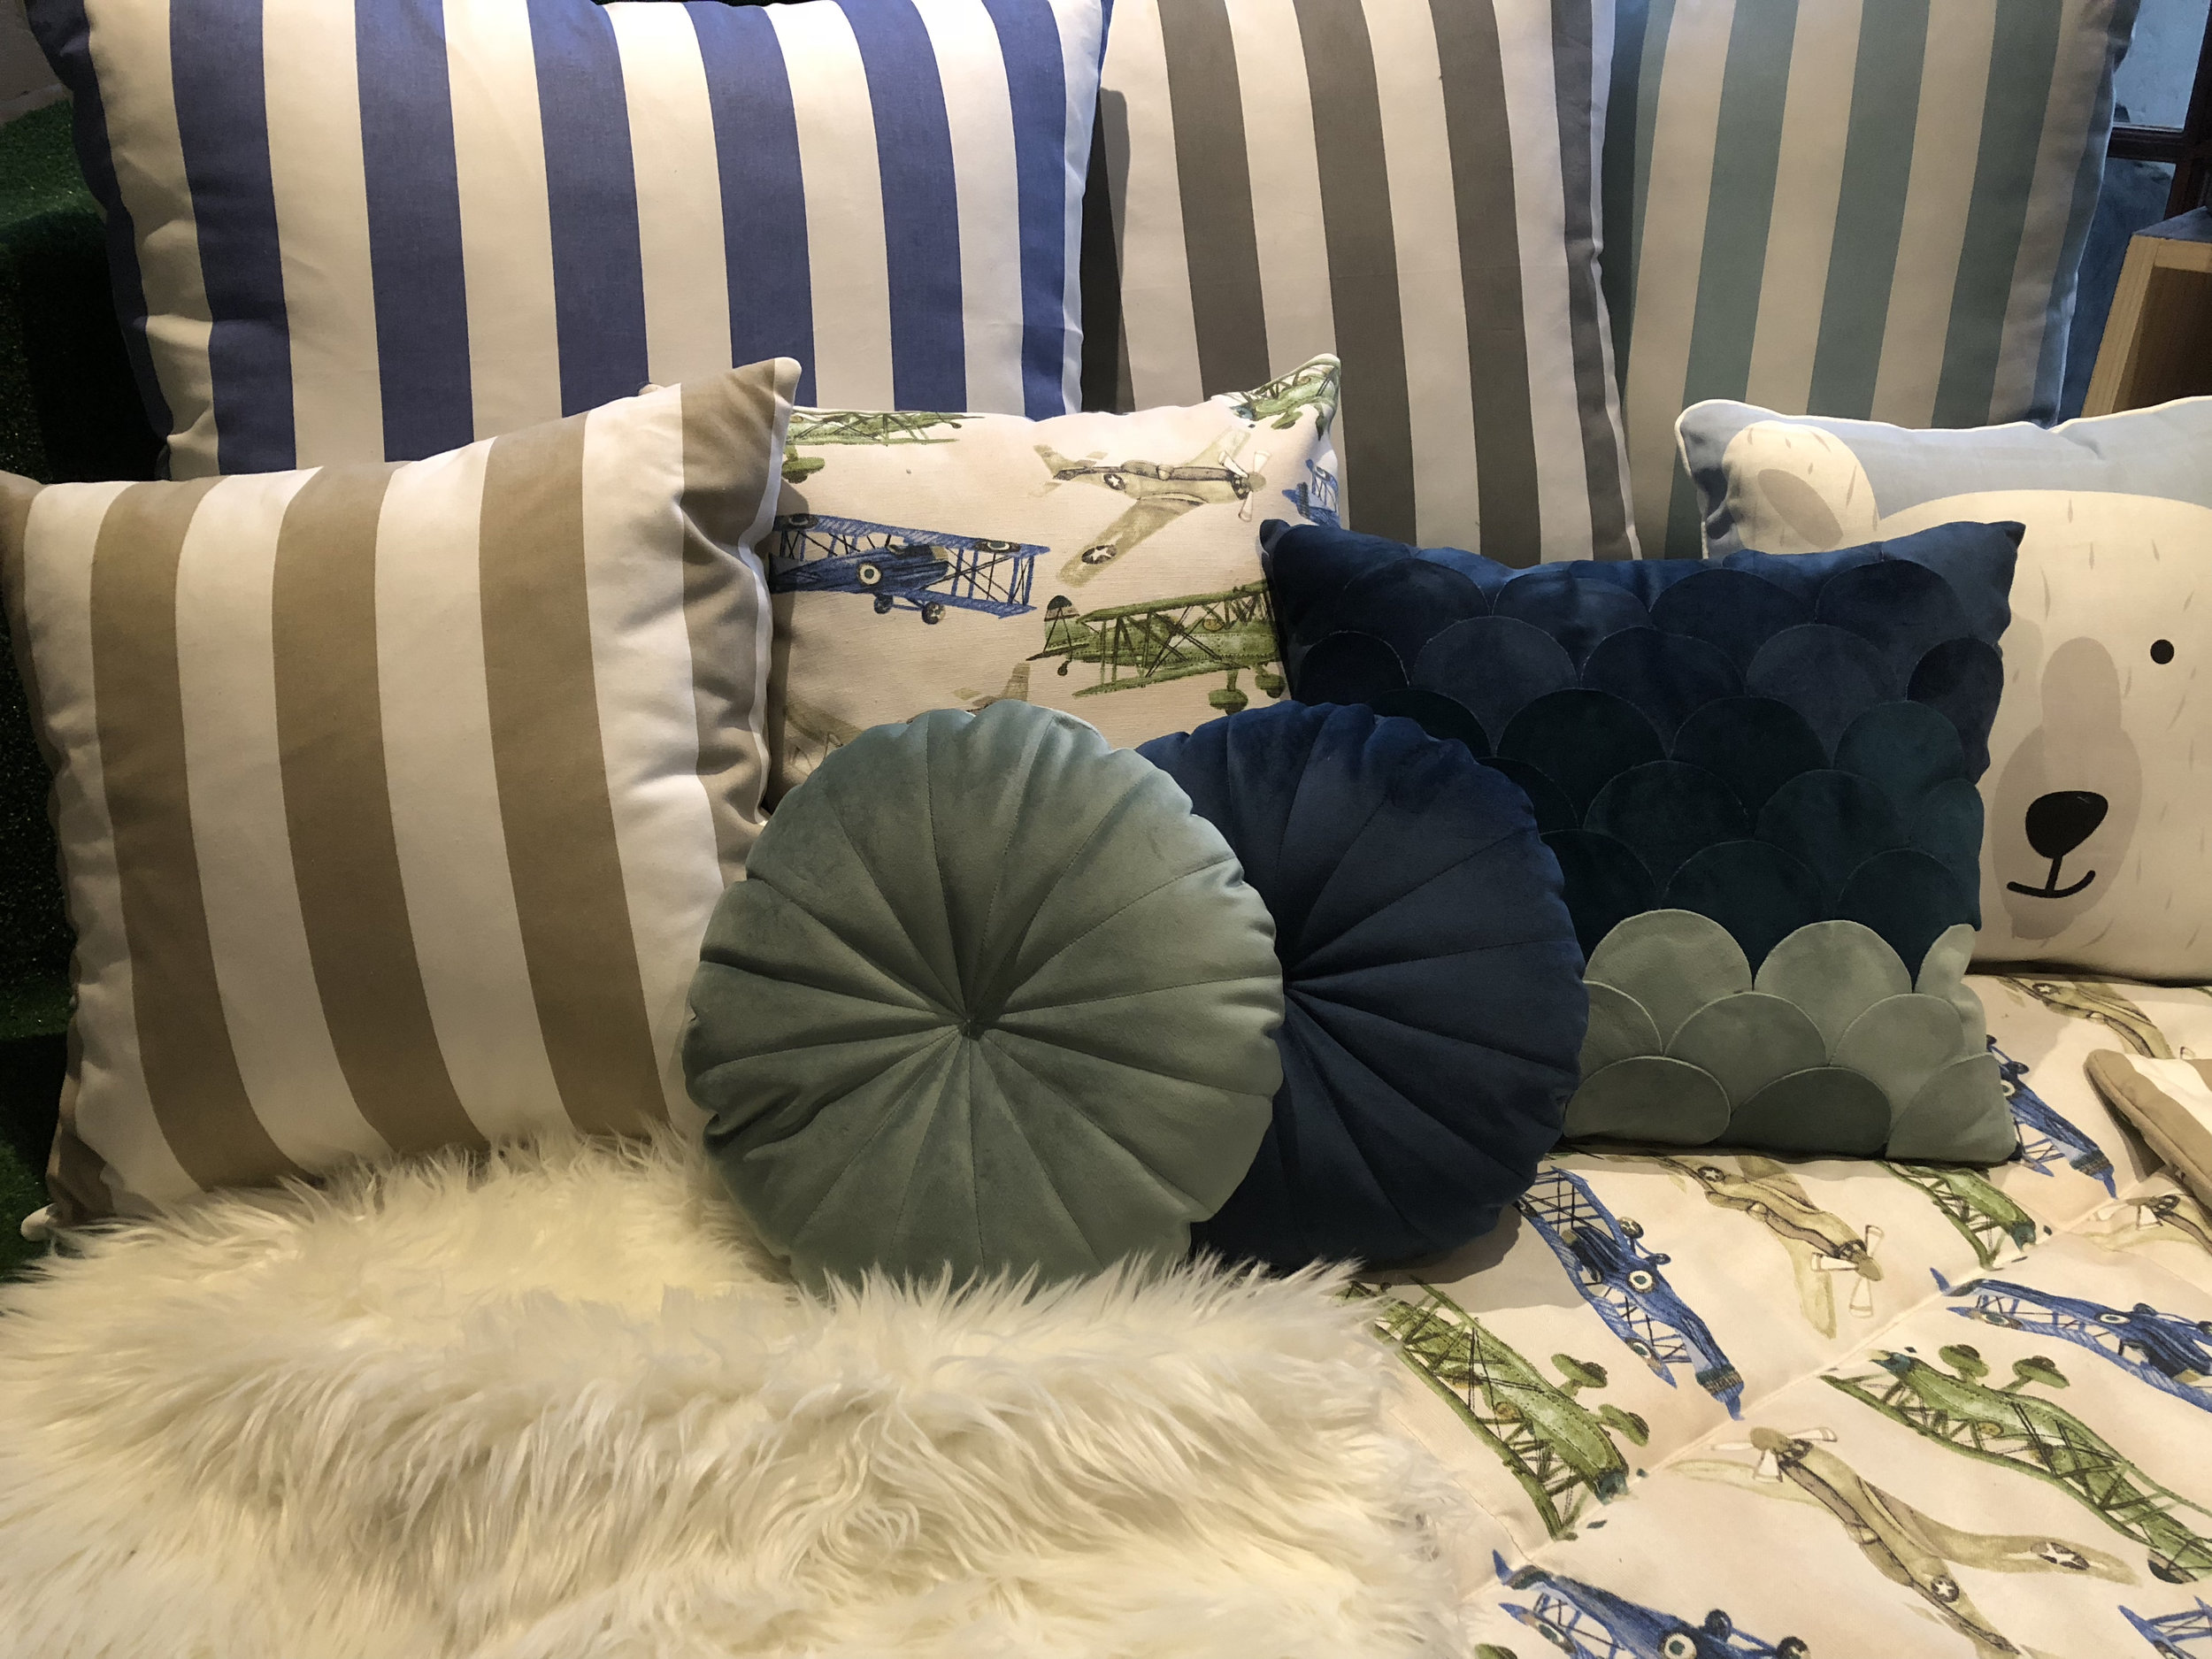 Handmade boys' playroom soft furnishings in blues and greens by Tassels & Tigers Interiors